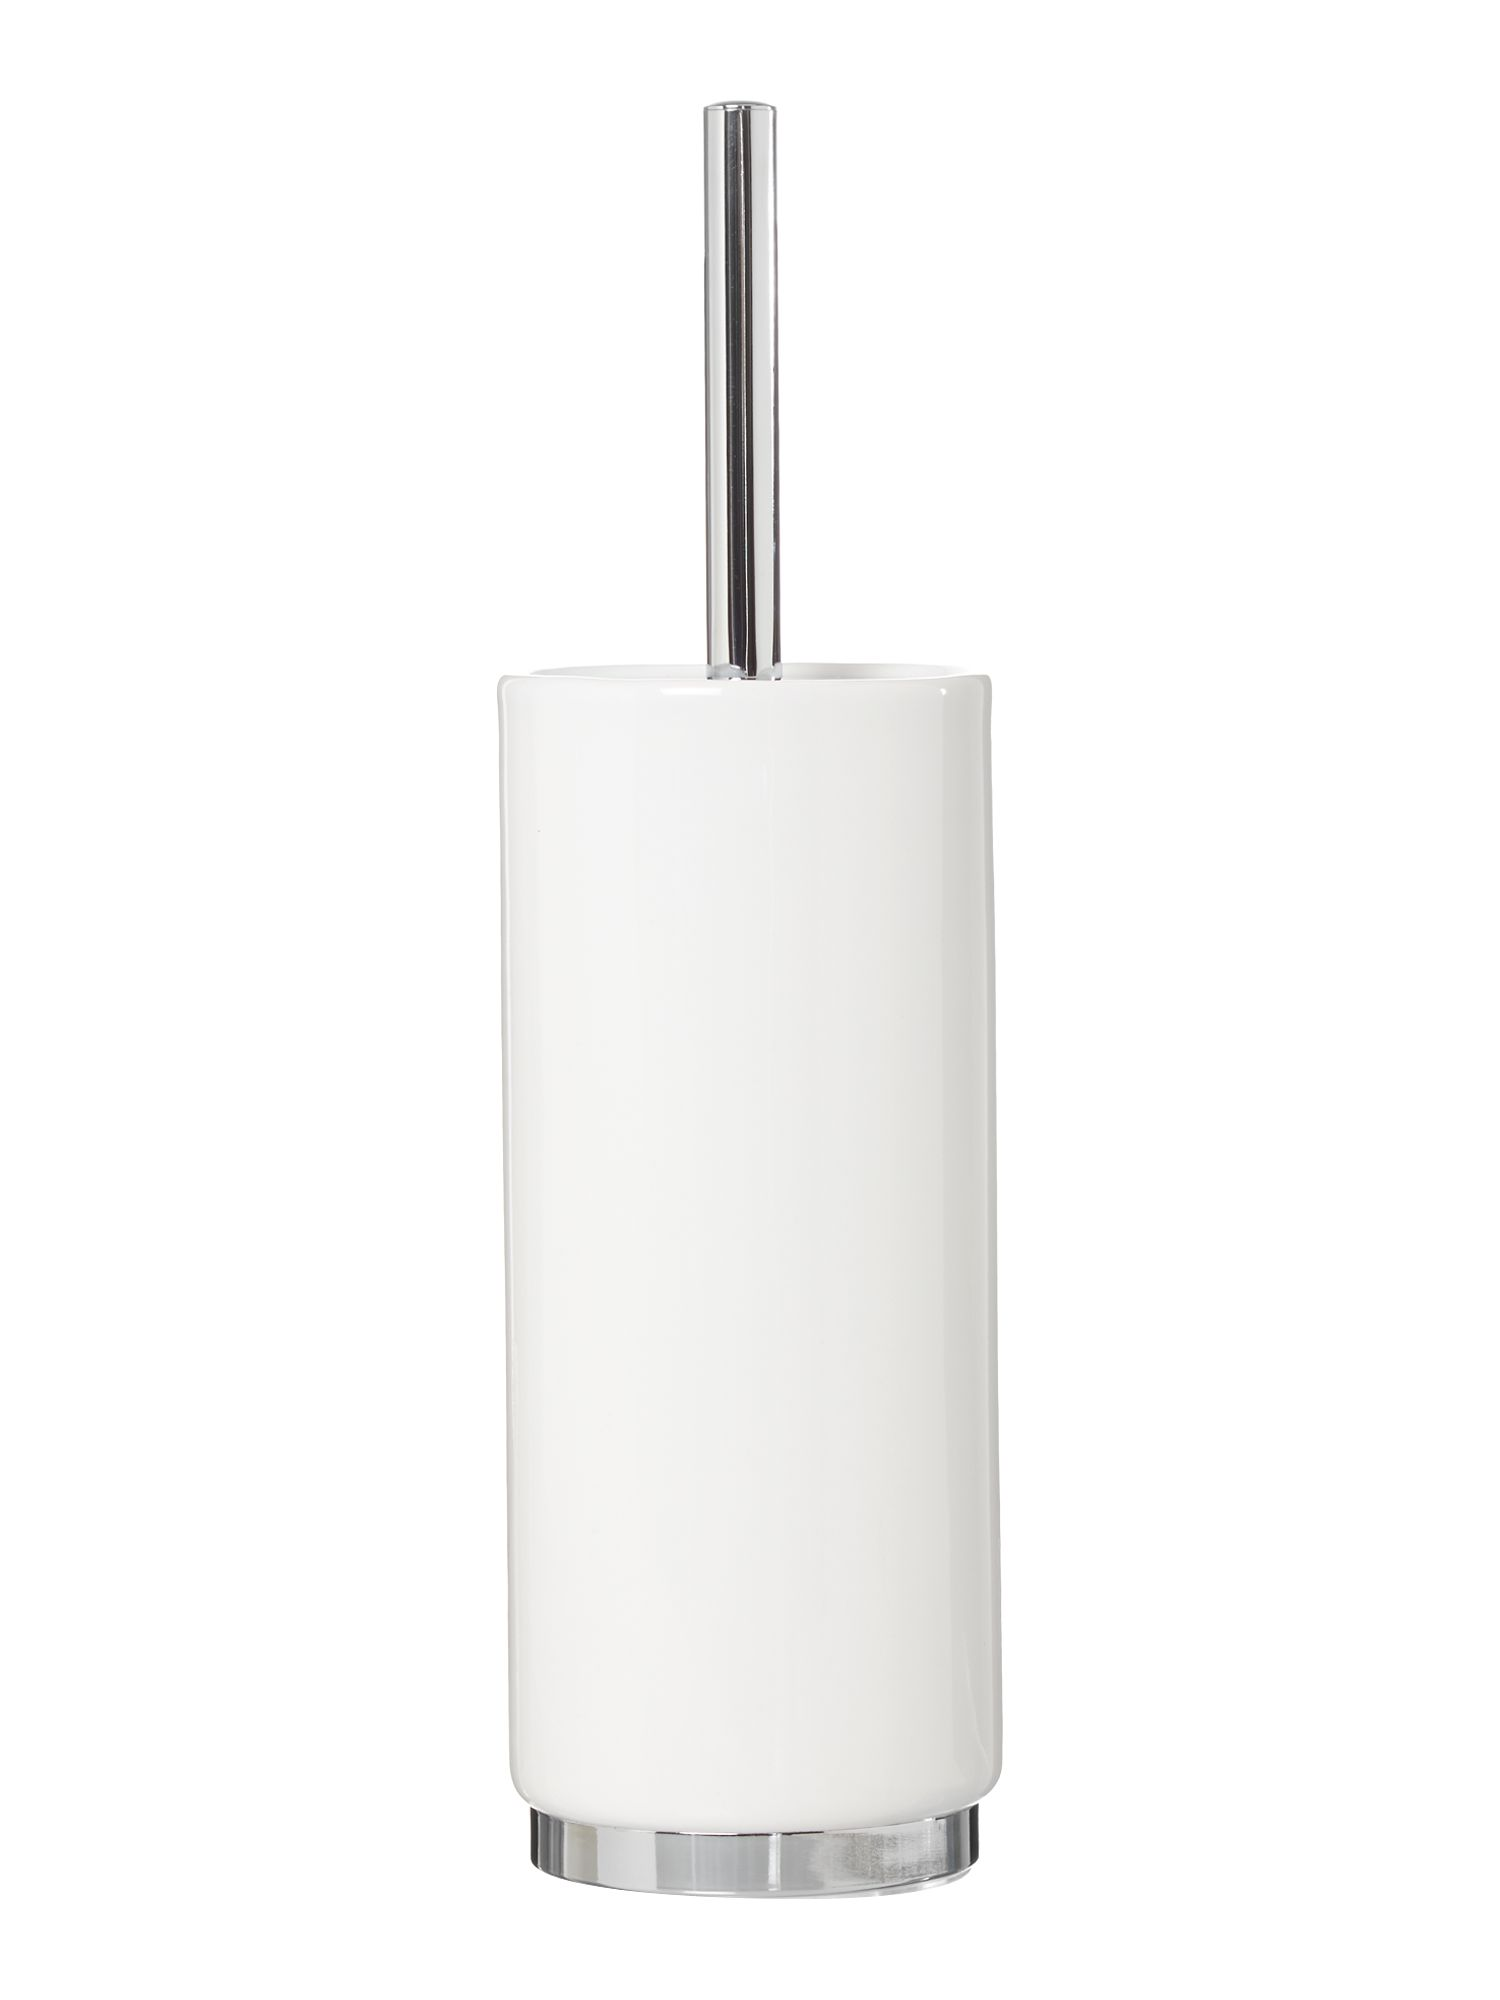 Ceramic Toilet Brush Holder Linea Ceramic Toilet Brush And Holder In White Review